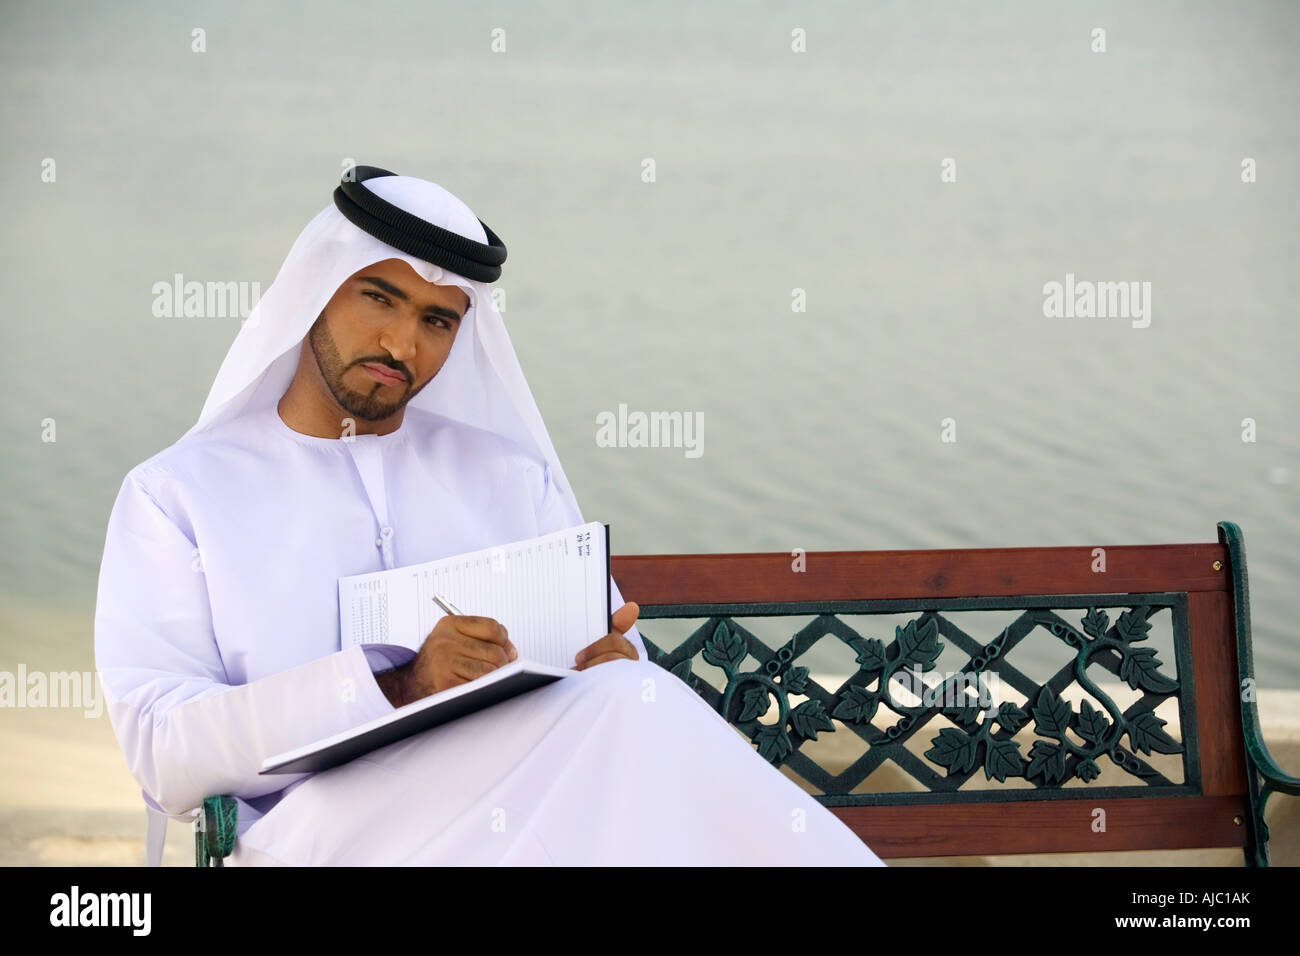 Arab Man Sitting on Park Bench Writing Journal - Stock Image